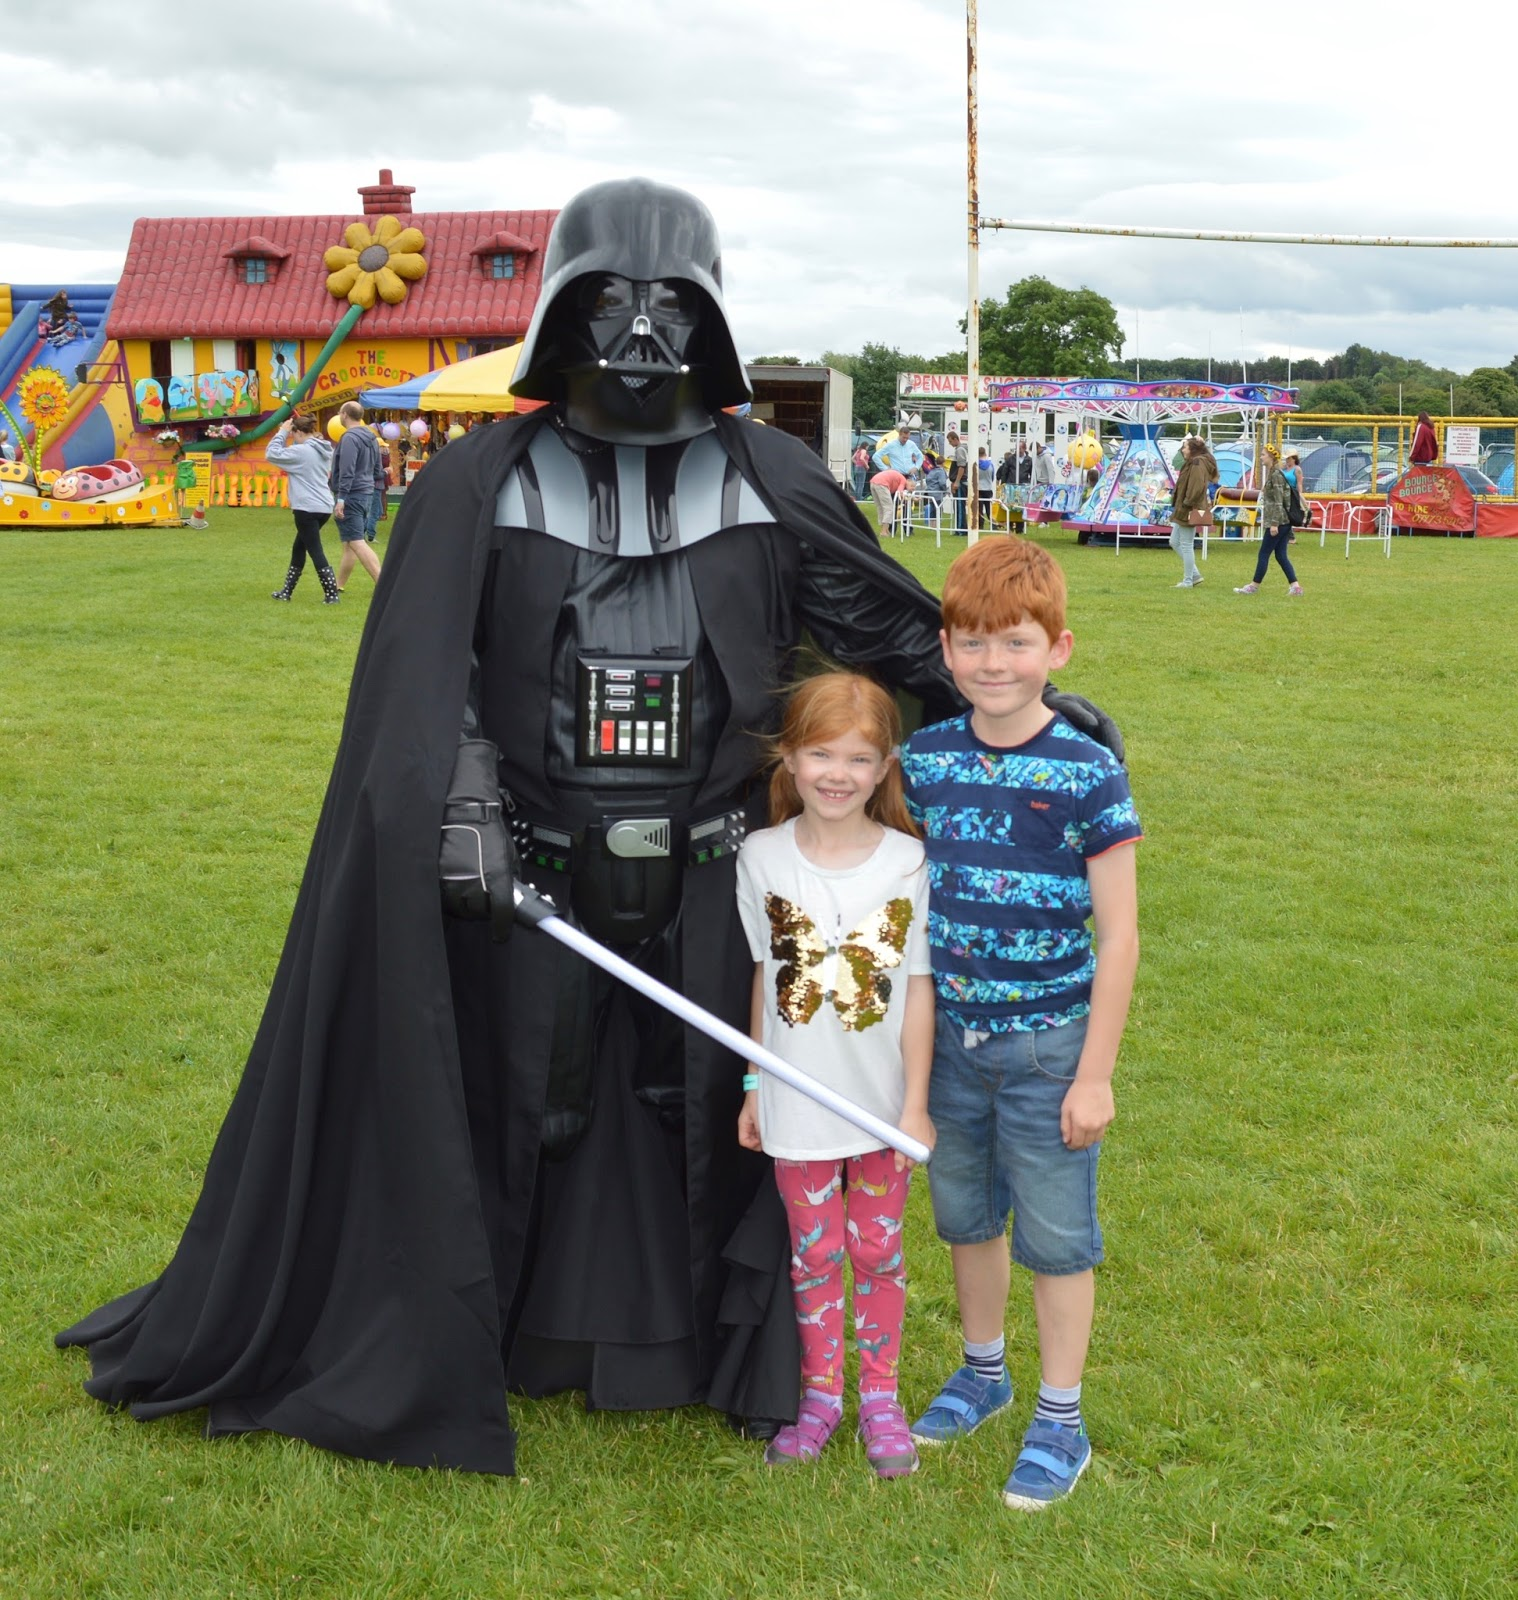 Corbridge Festival 2016 - A Review - Be Your Guest Darth Vader